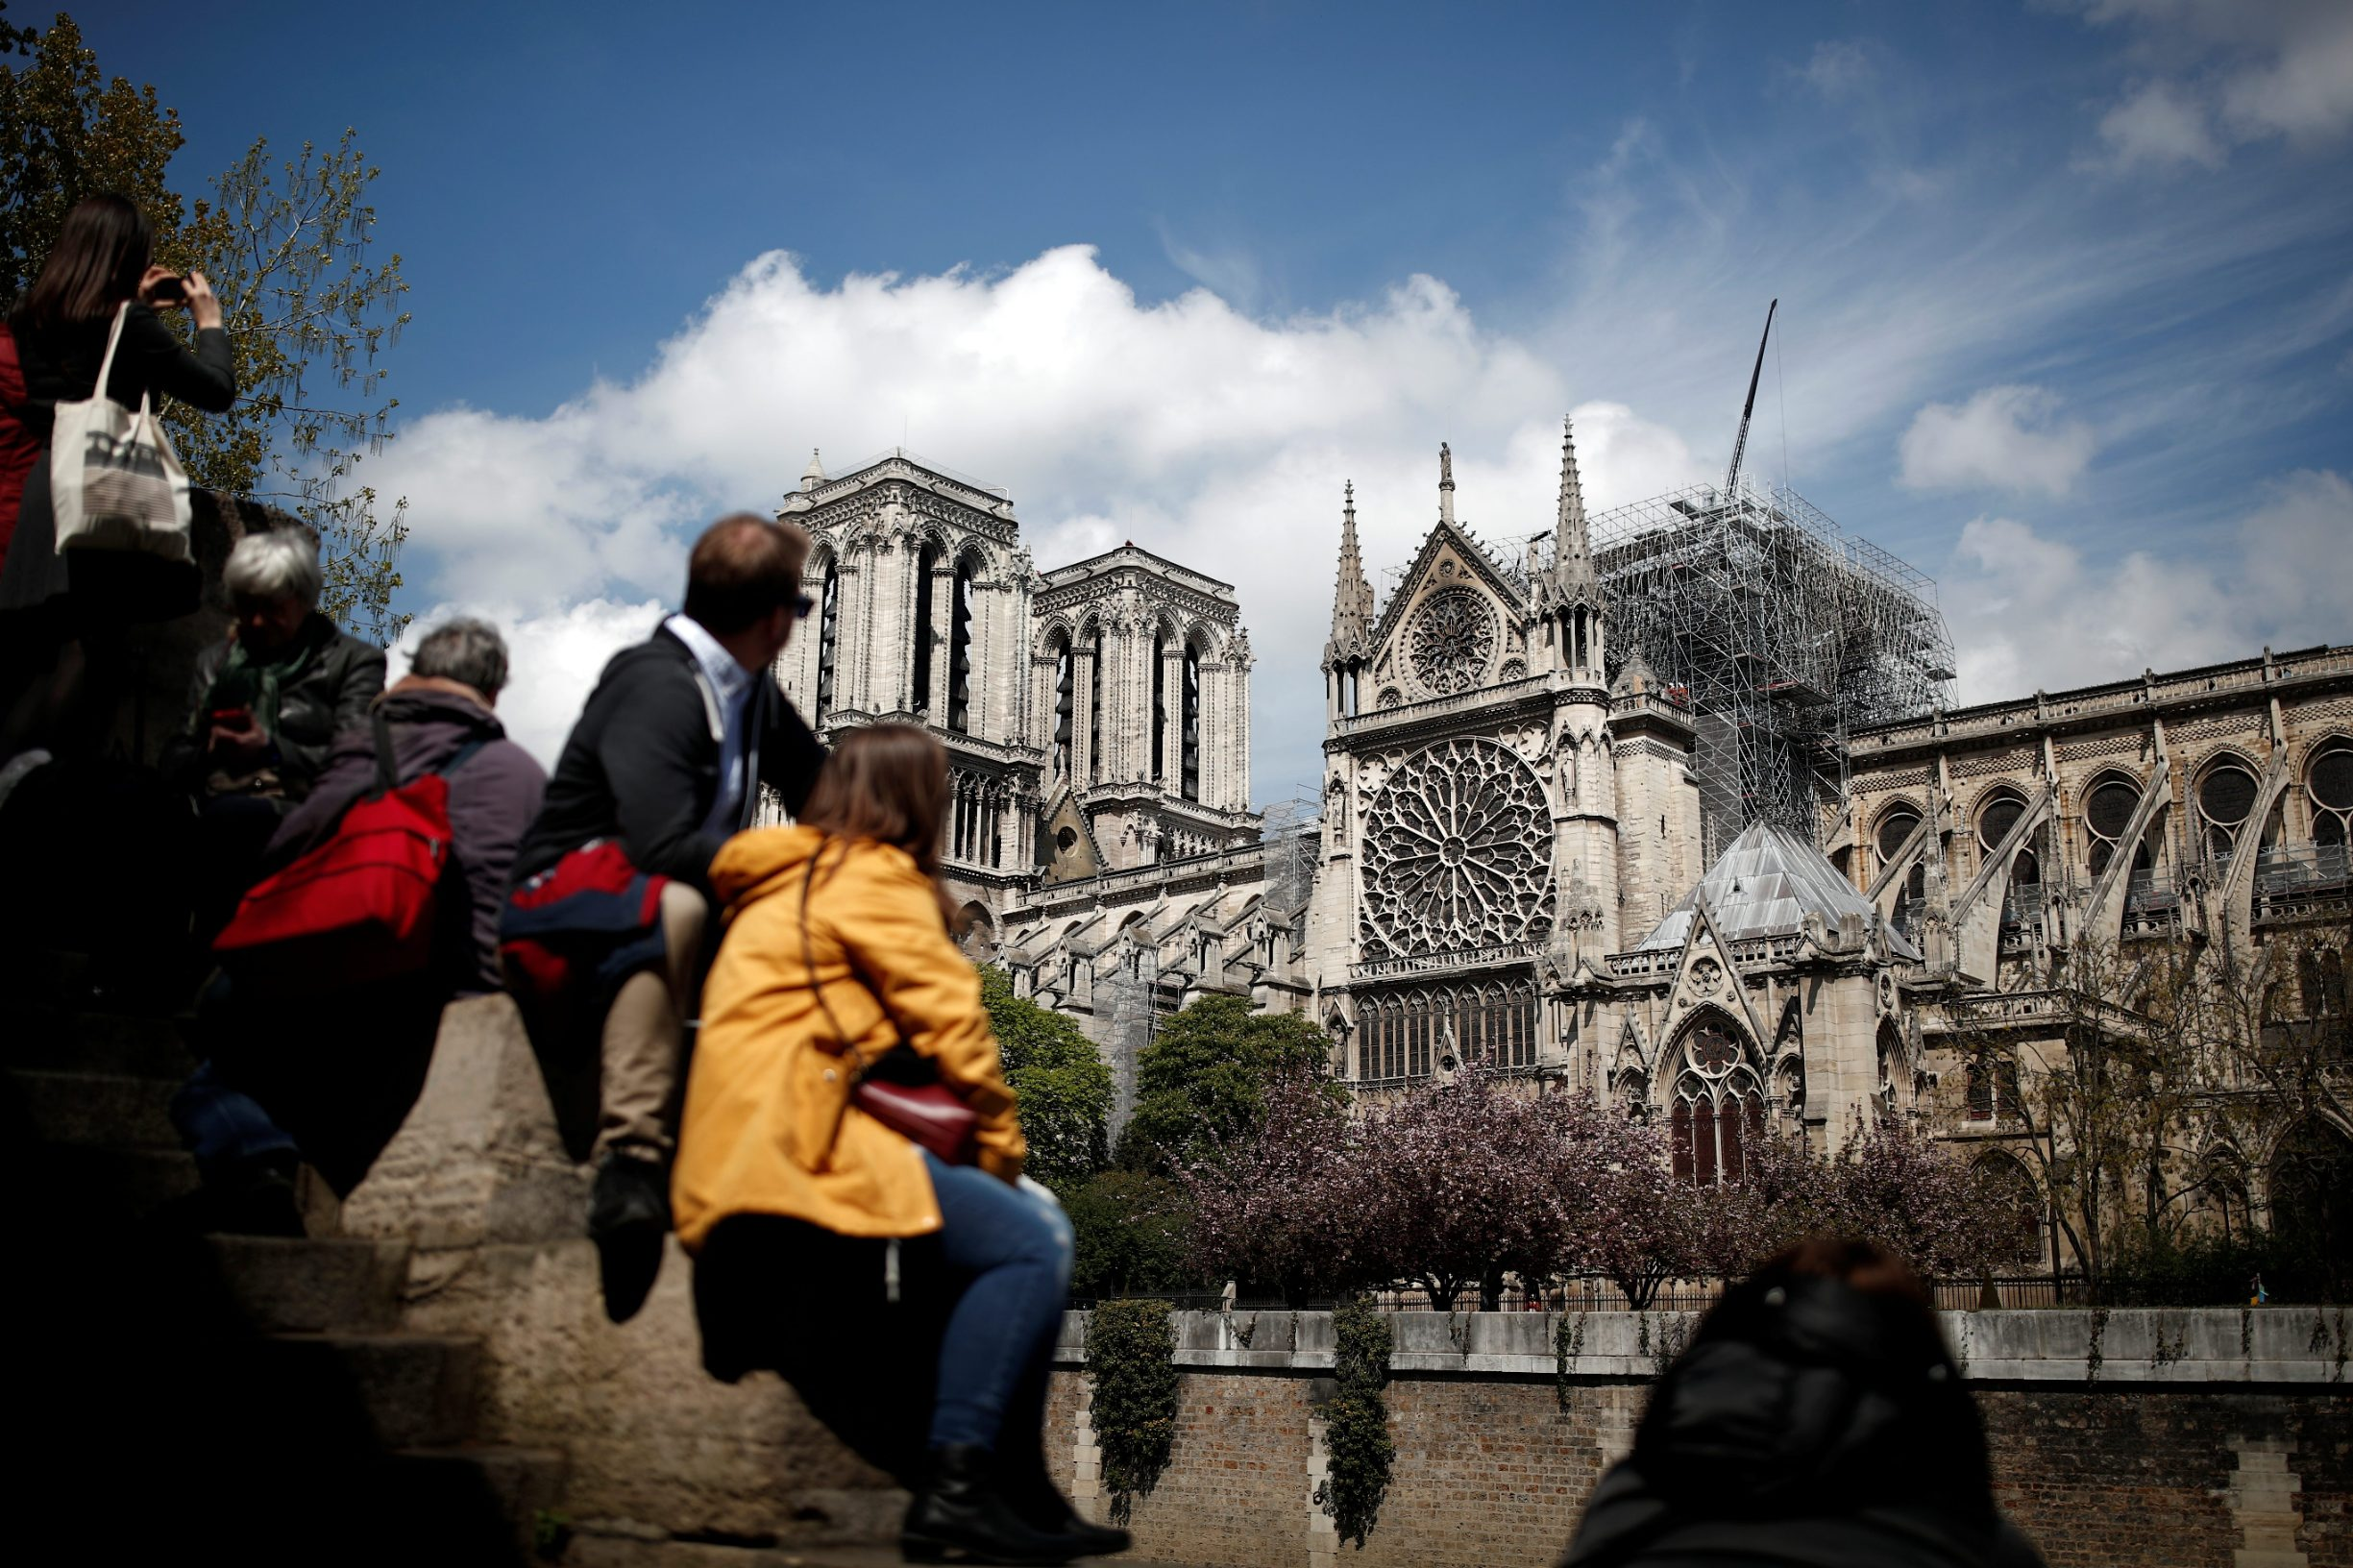 People look at Notre-Dame Cathedral two days after a massive fire devastated large parts of the gothic structure in Paris, France, April 17, 2019.   REUTERS/Benoit Tessier